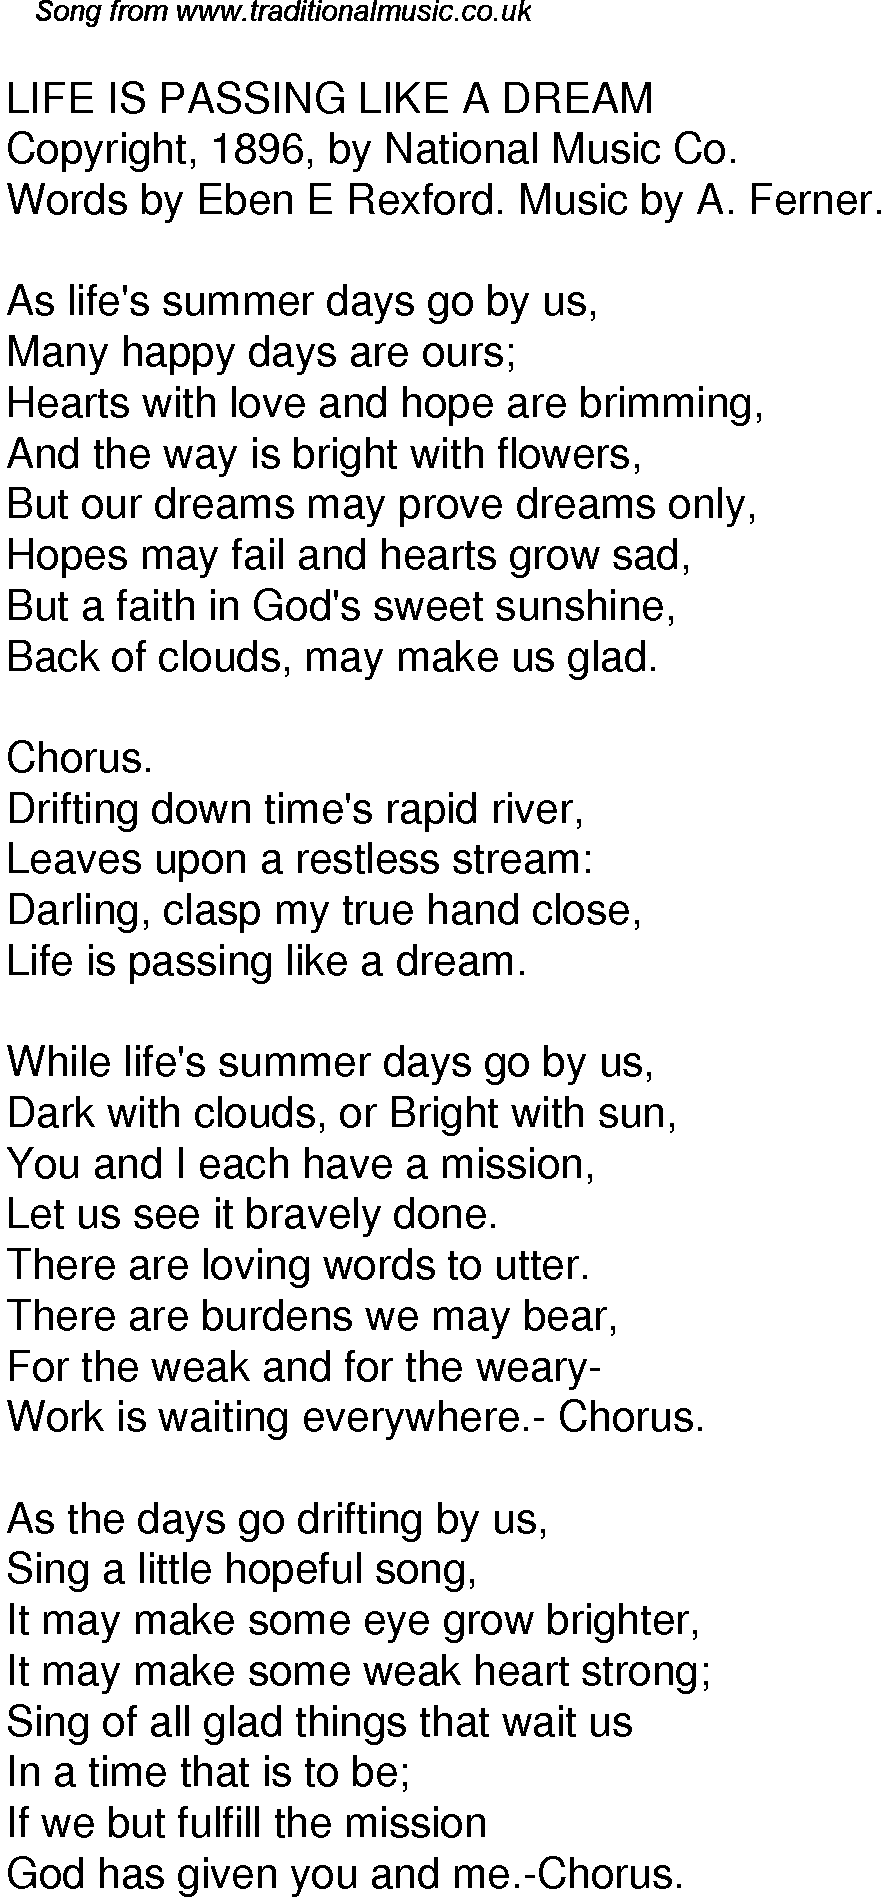 Old Time Song Lyrics for 54 Life Is Passing Like A Dream